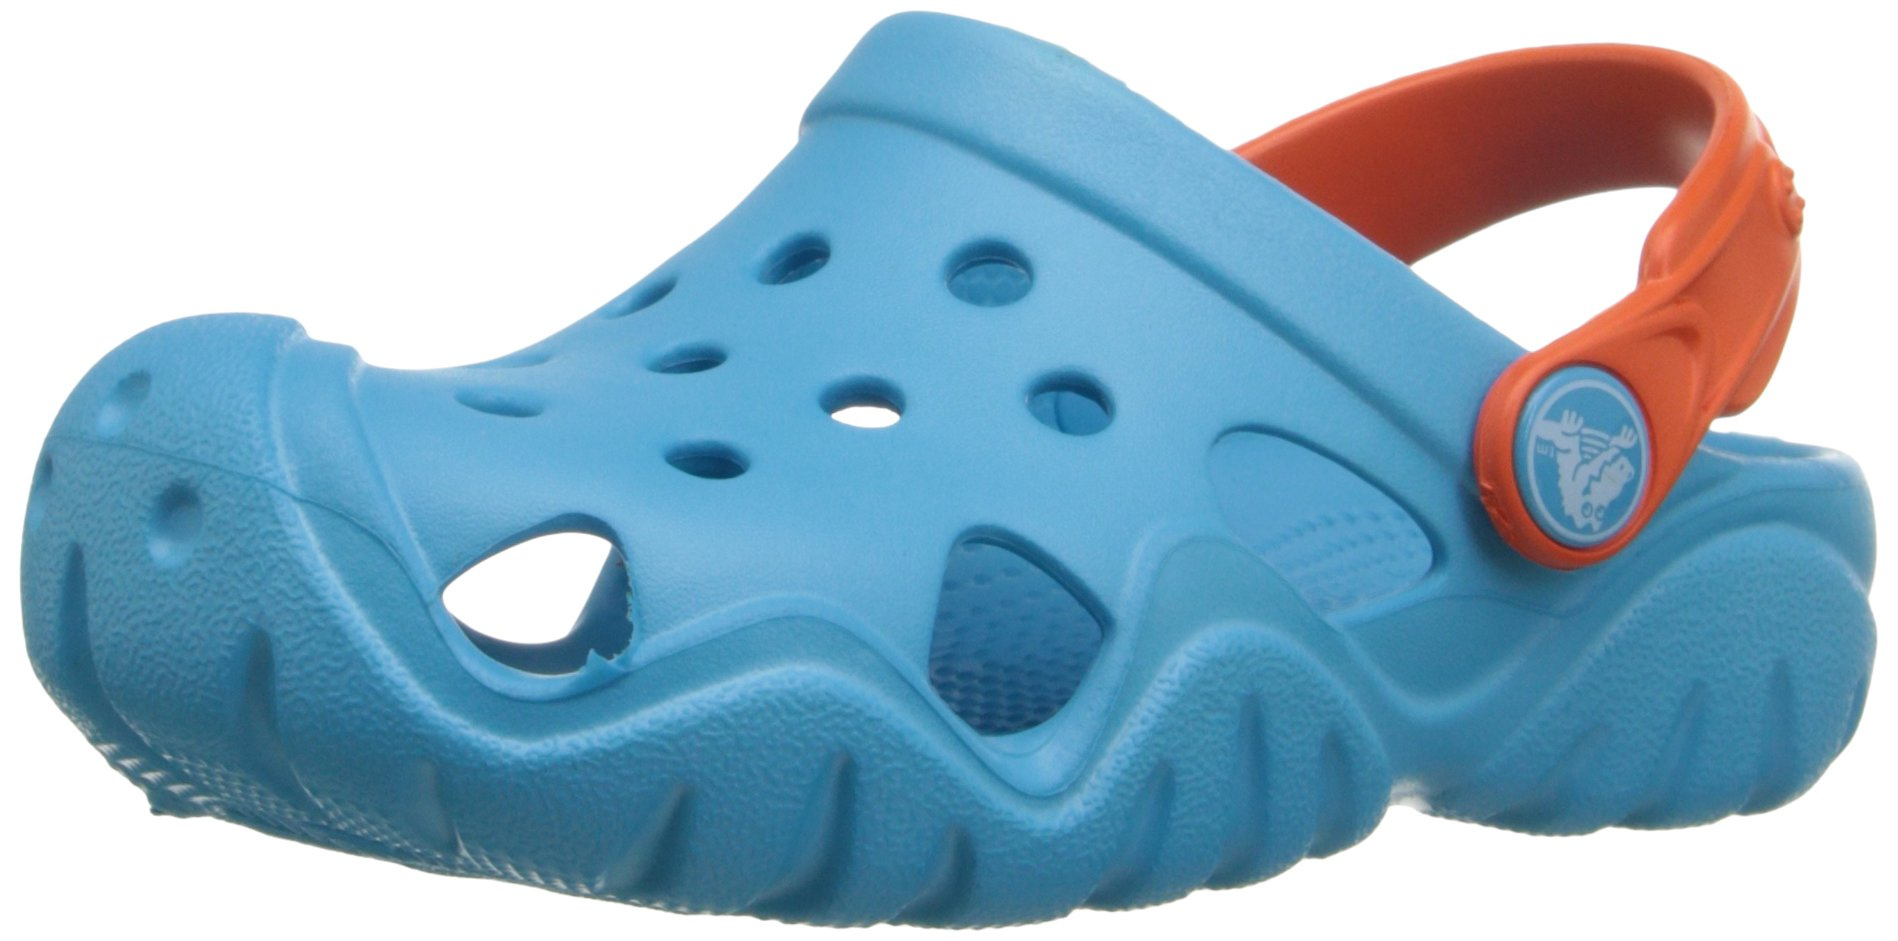 Crocs Kids' Swiftwater Clog K, Electric Blue/Tangerine 6 M US Toddler